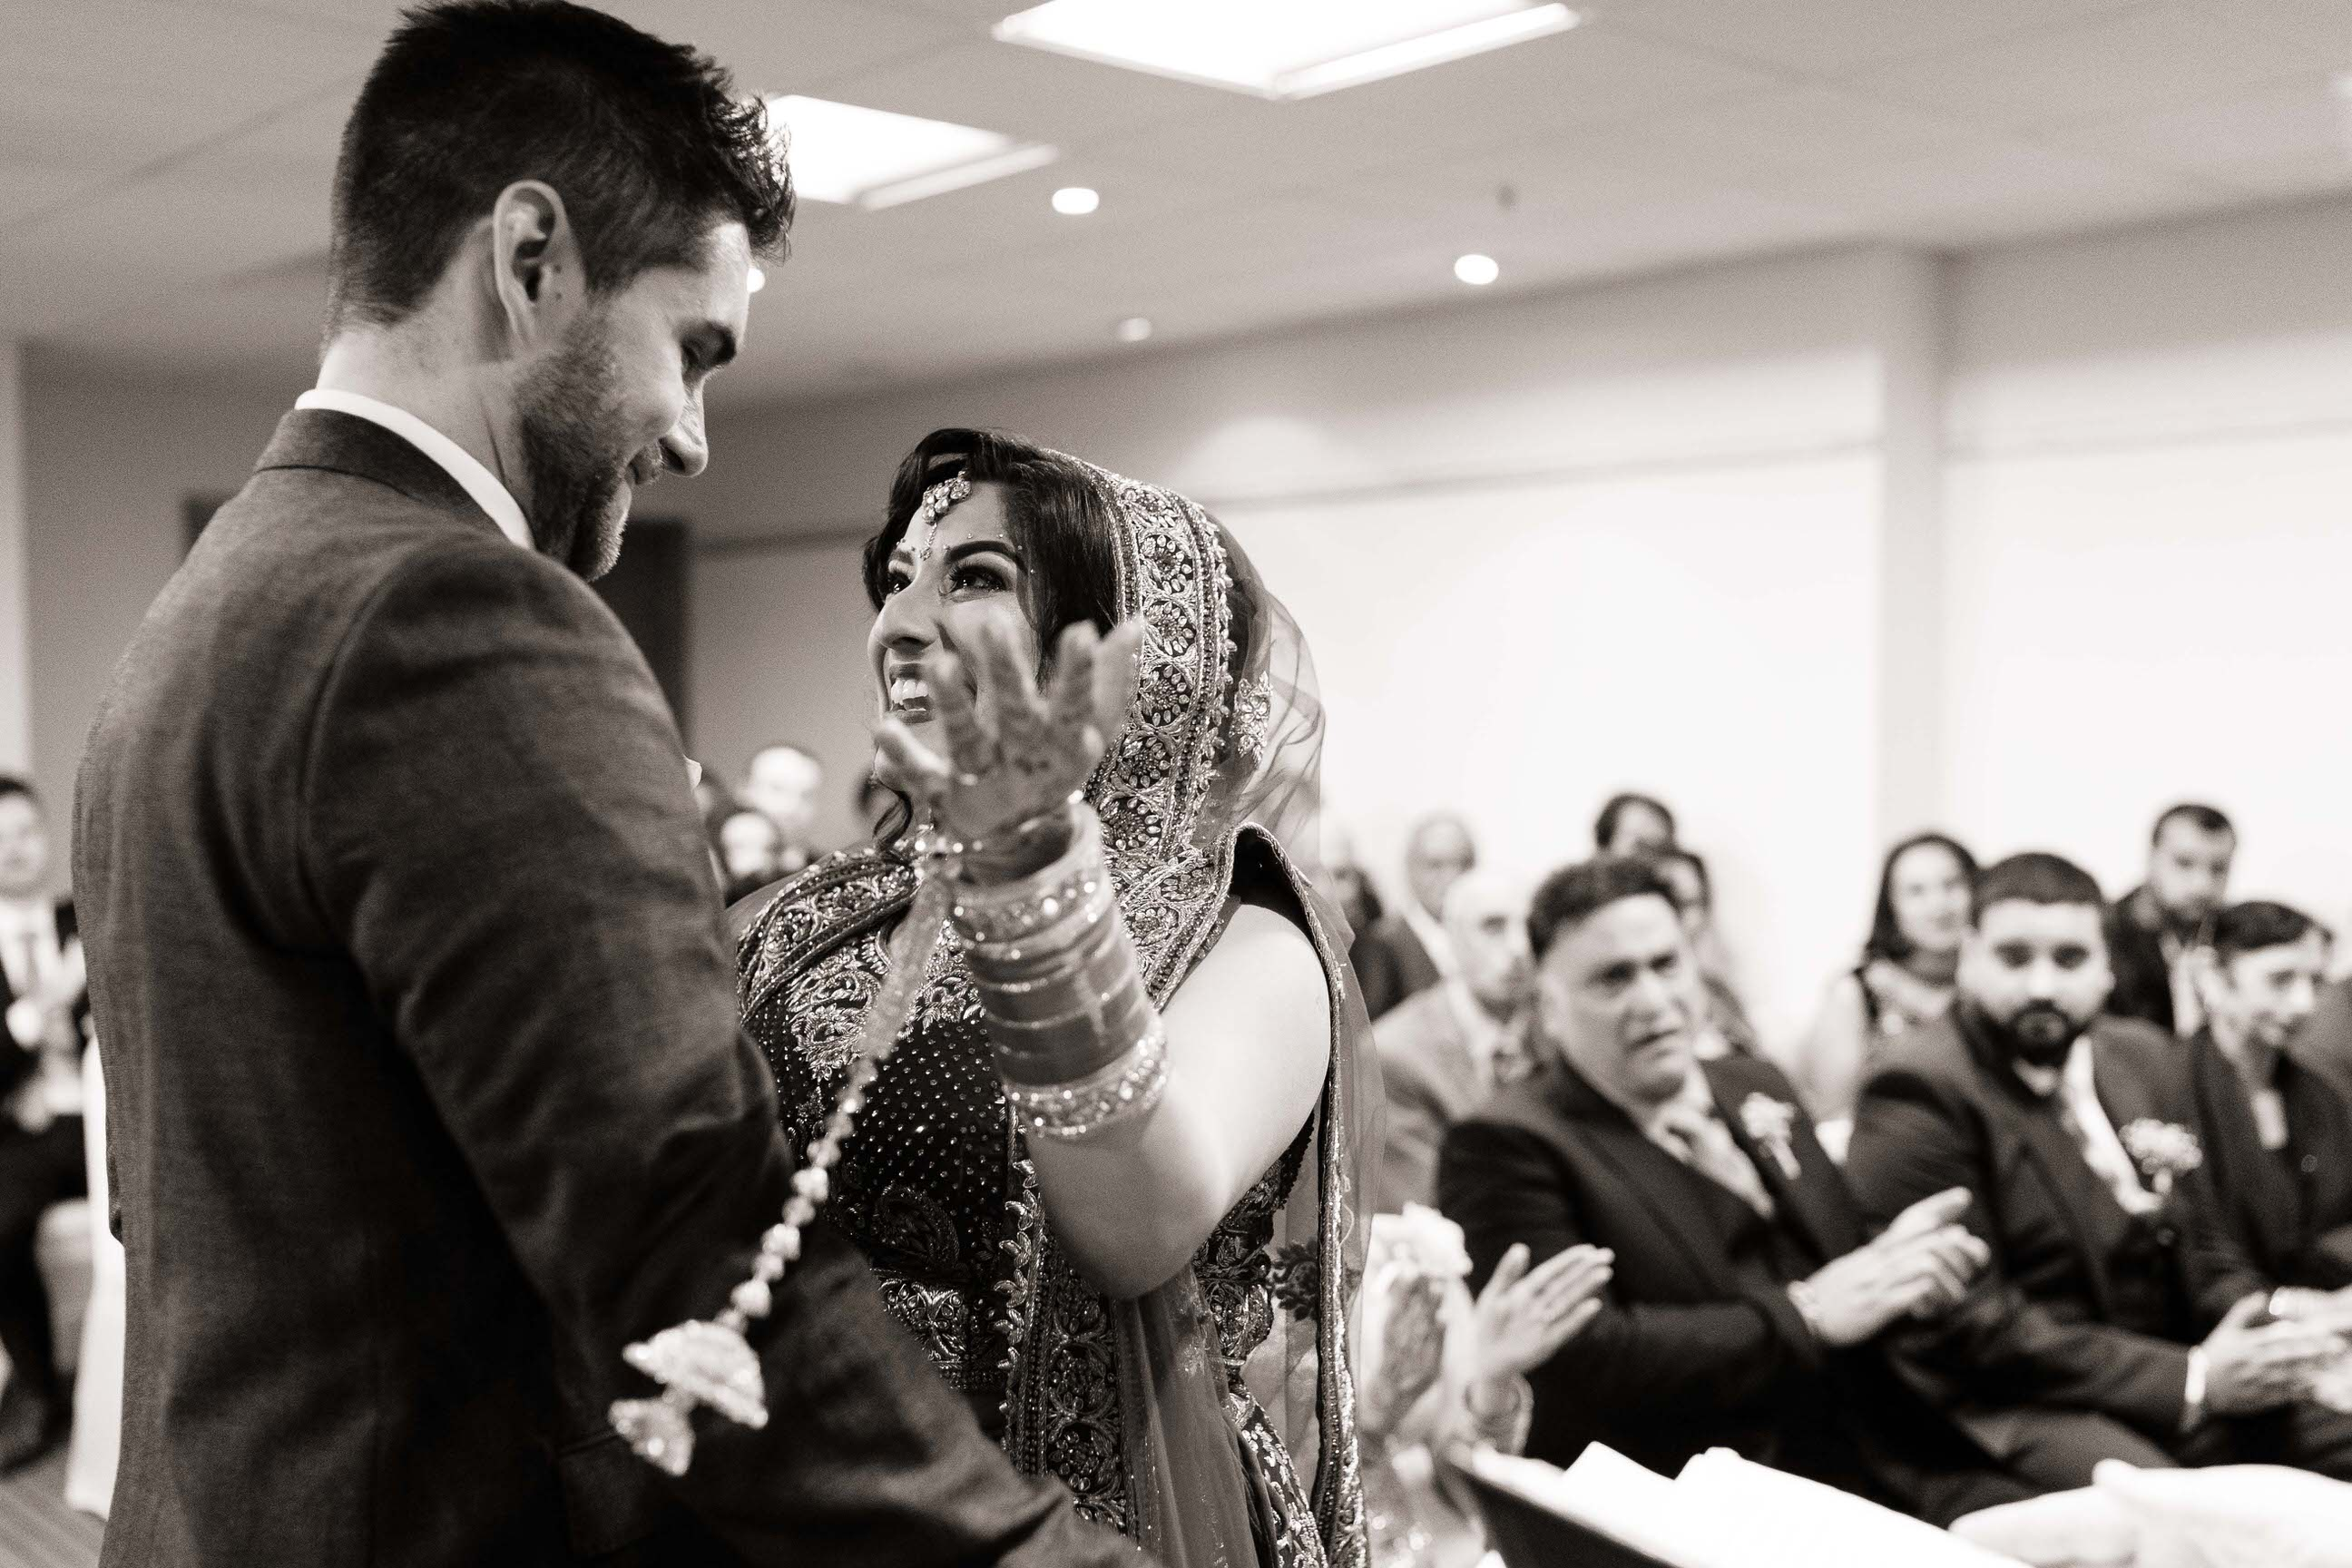 Wedding photography at the crowne plaza nottingham bride and groom celebrate during the wedding ceremony